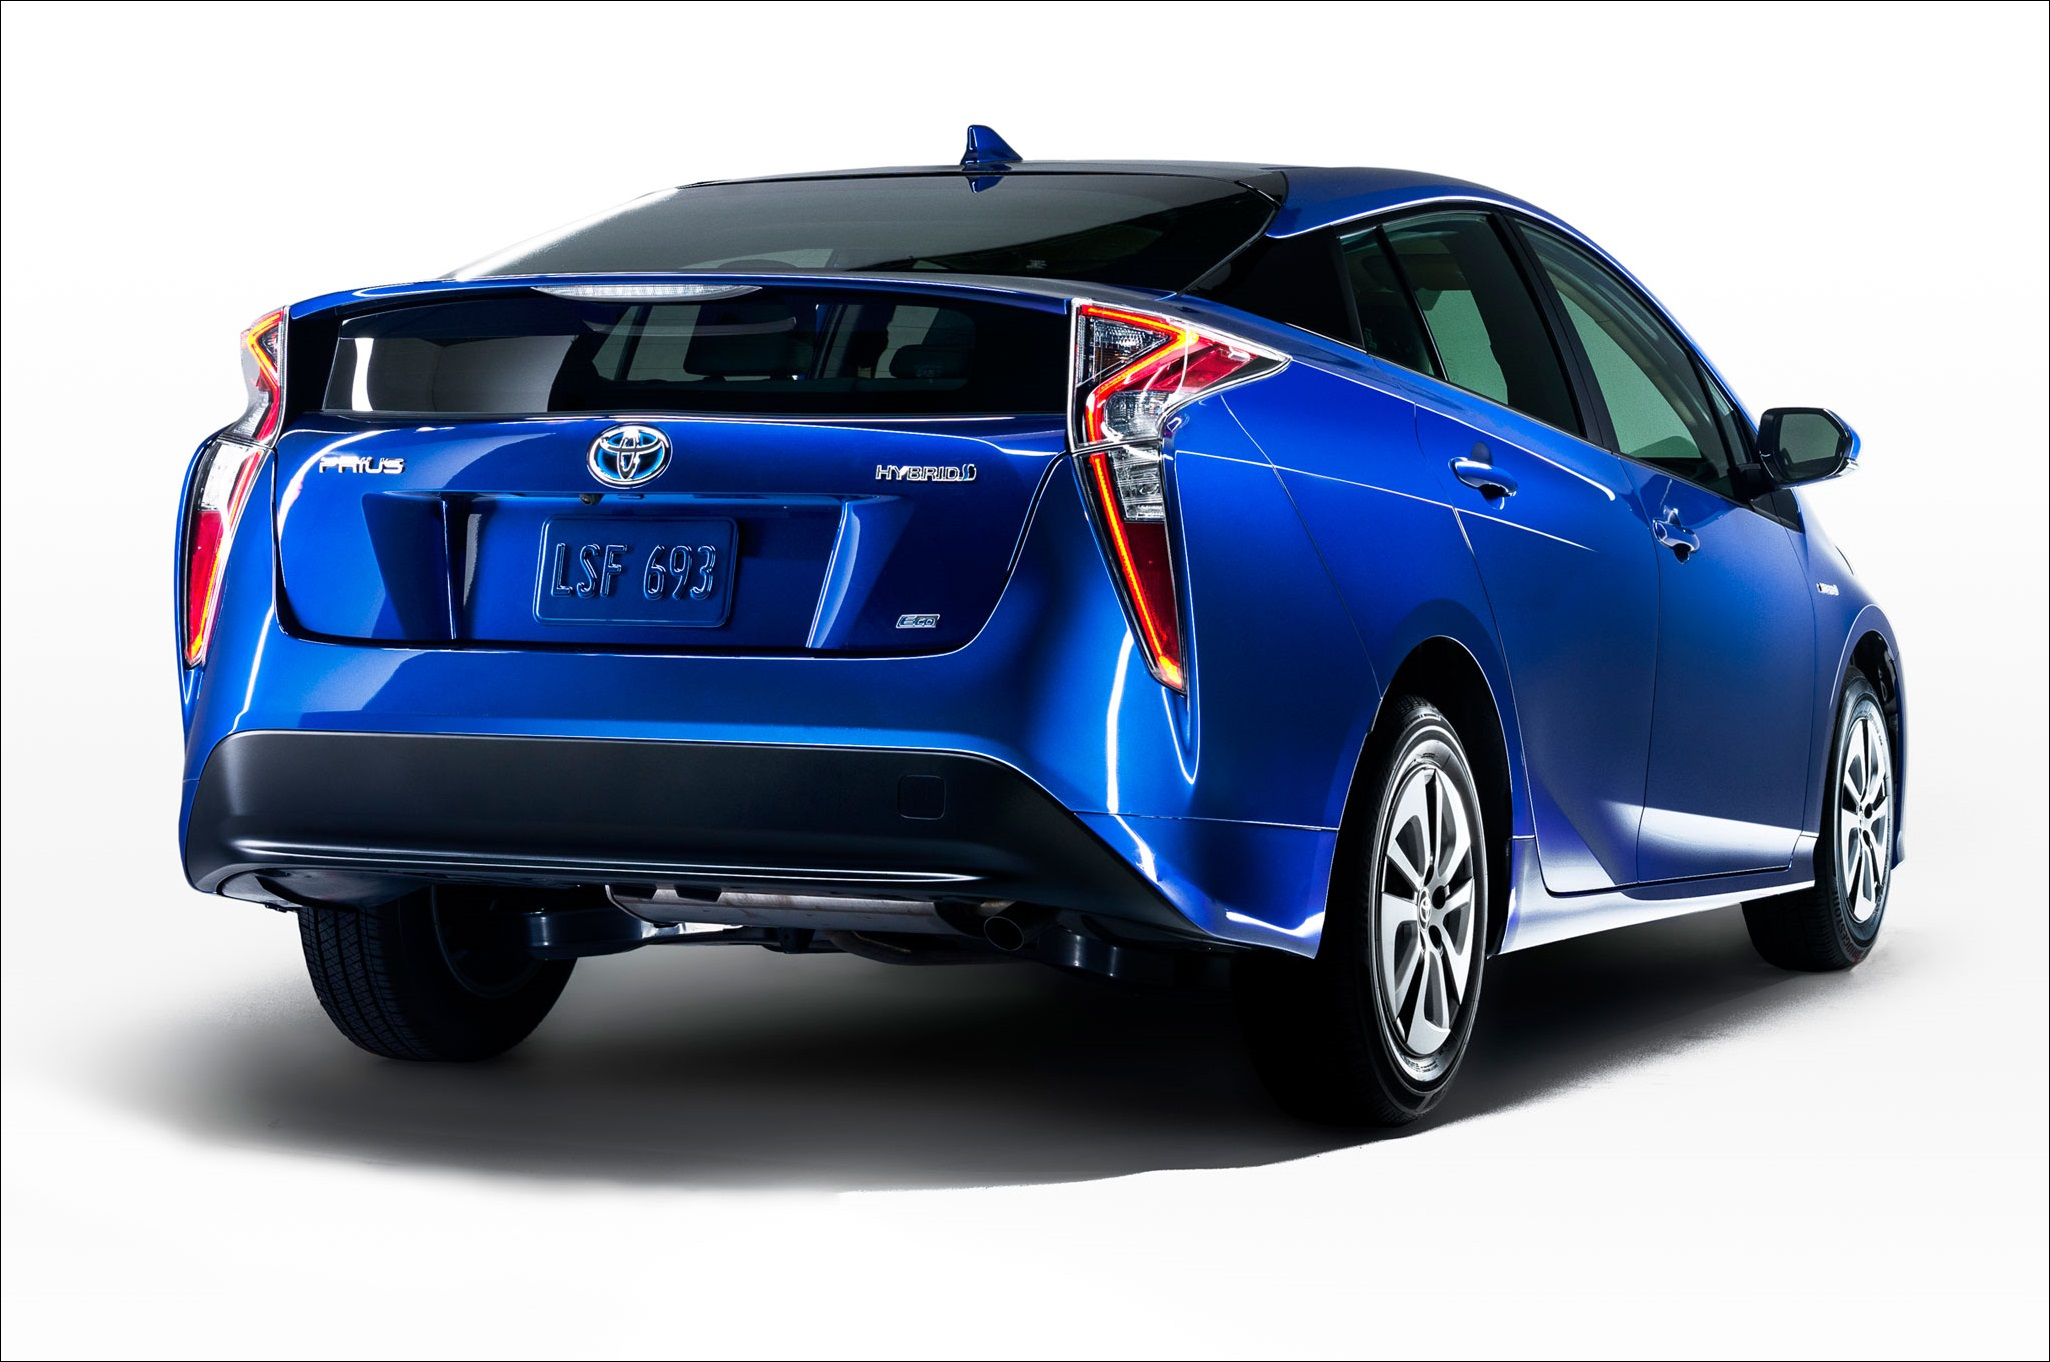 2016-toyota-prius-eco-rear-view-at-angle